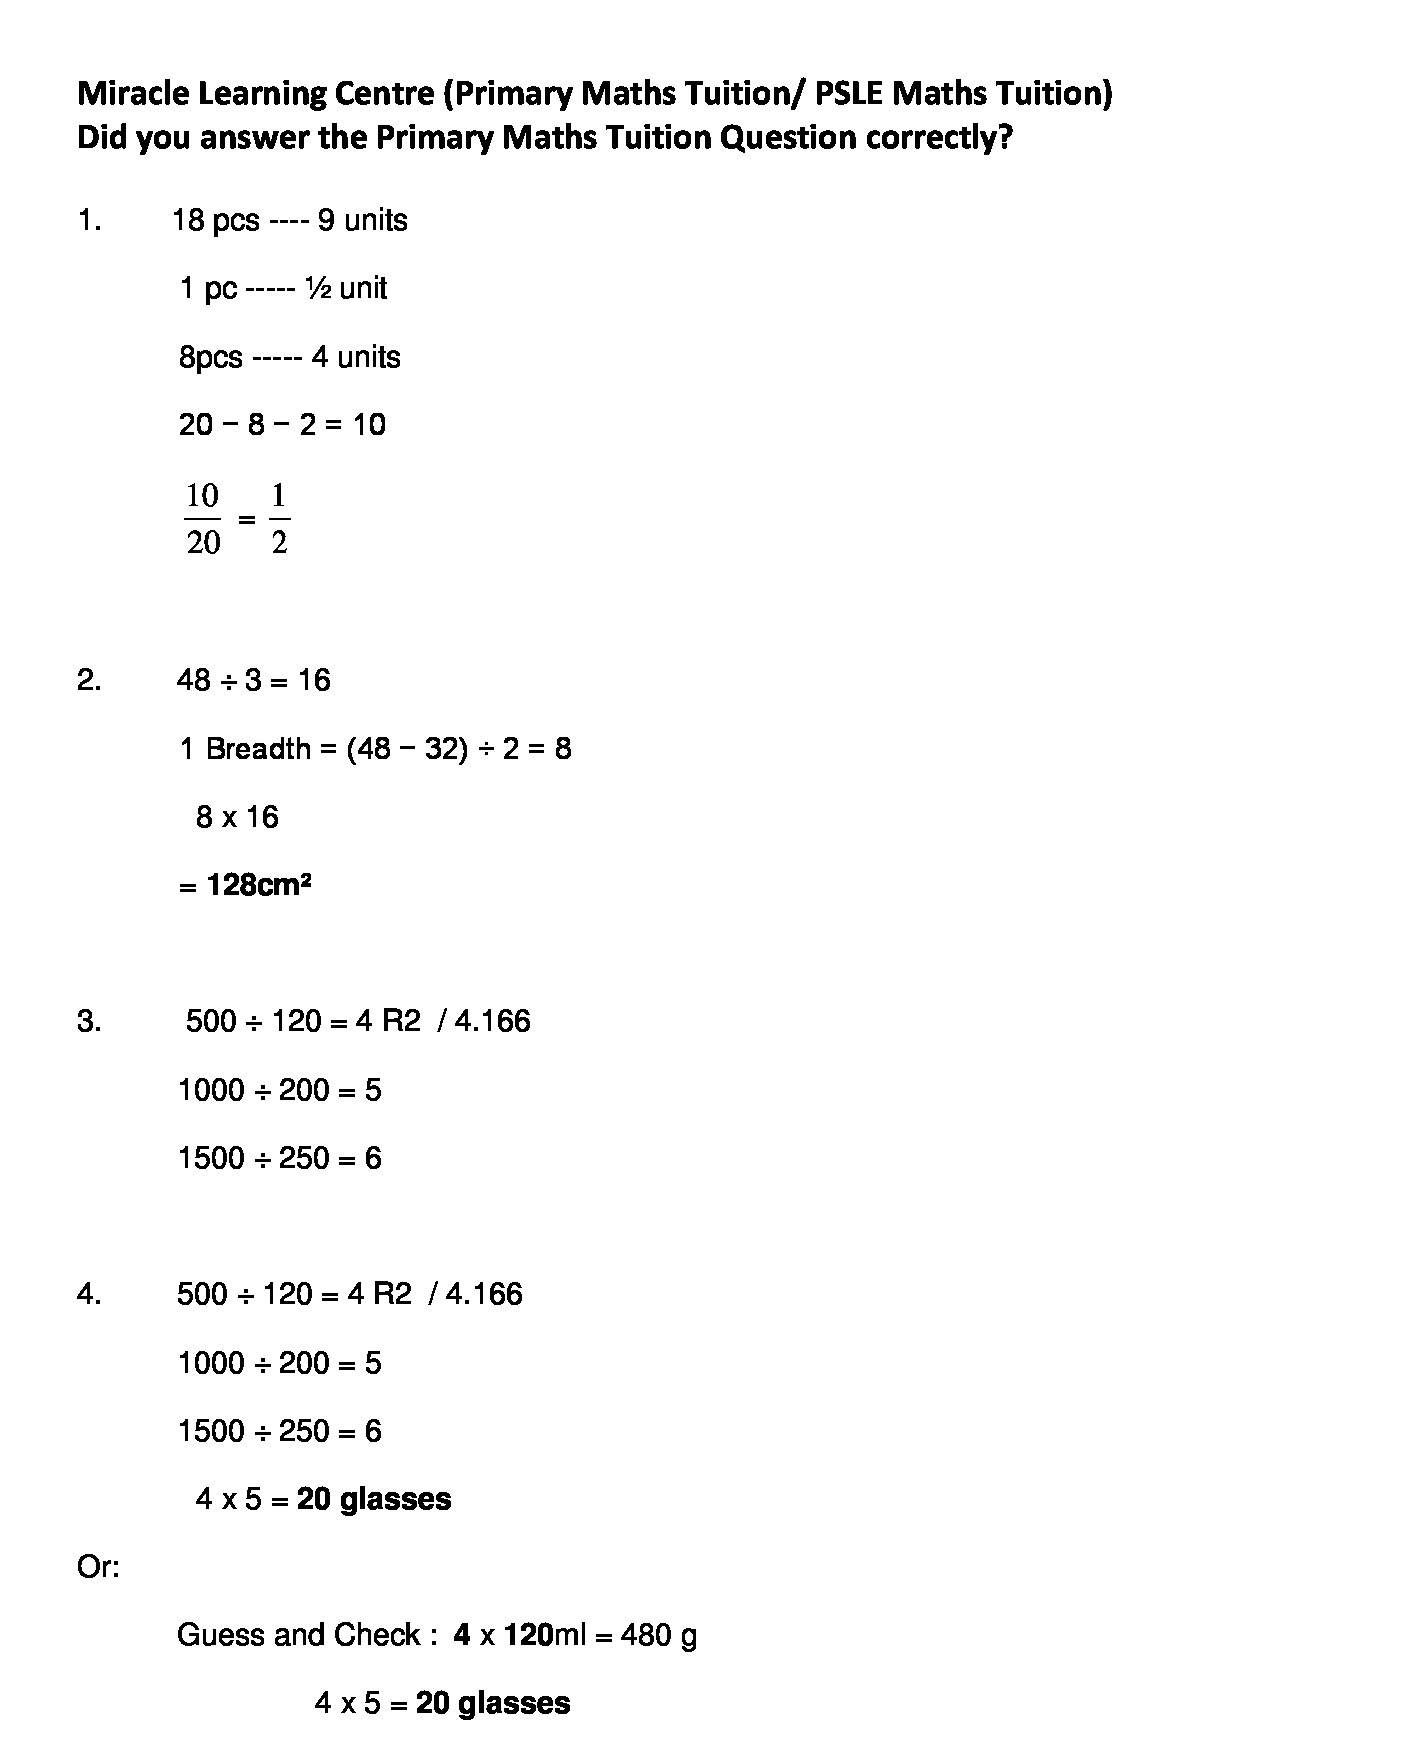 primary_maths_tuition_q